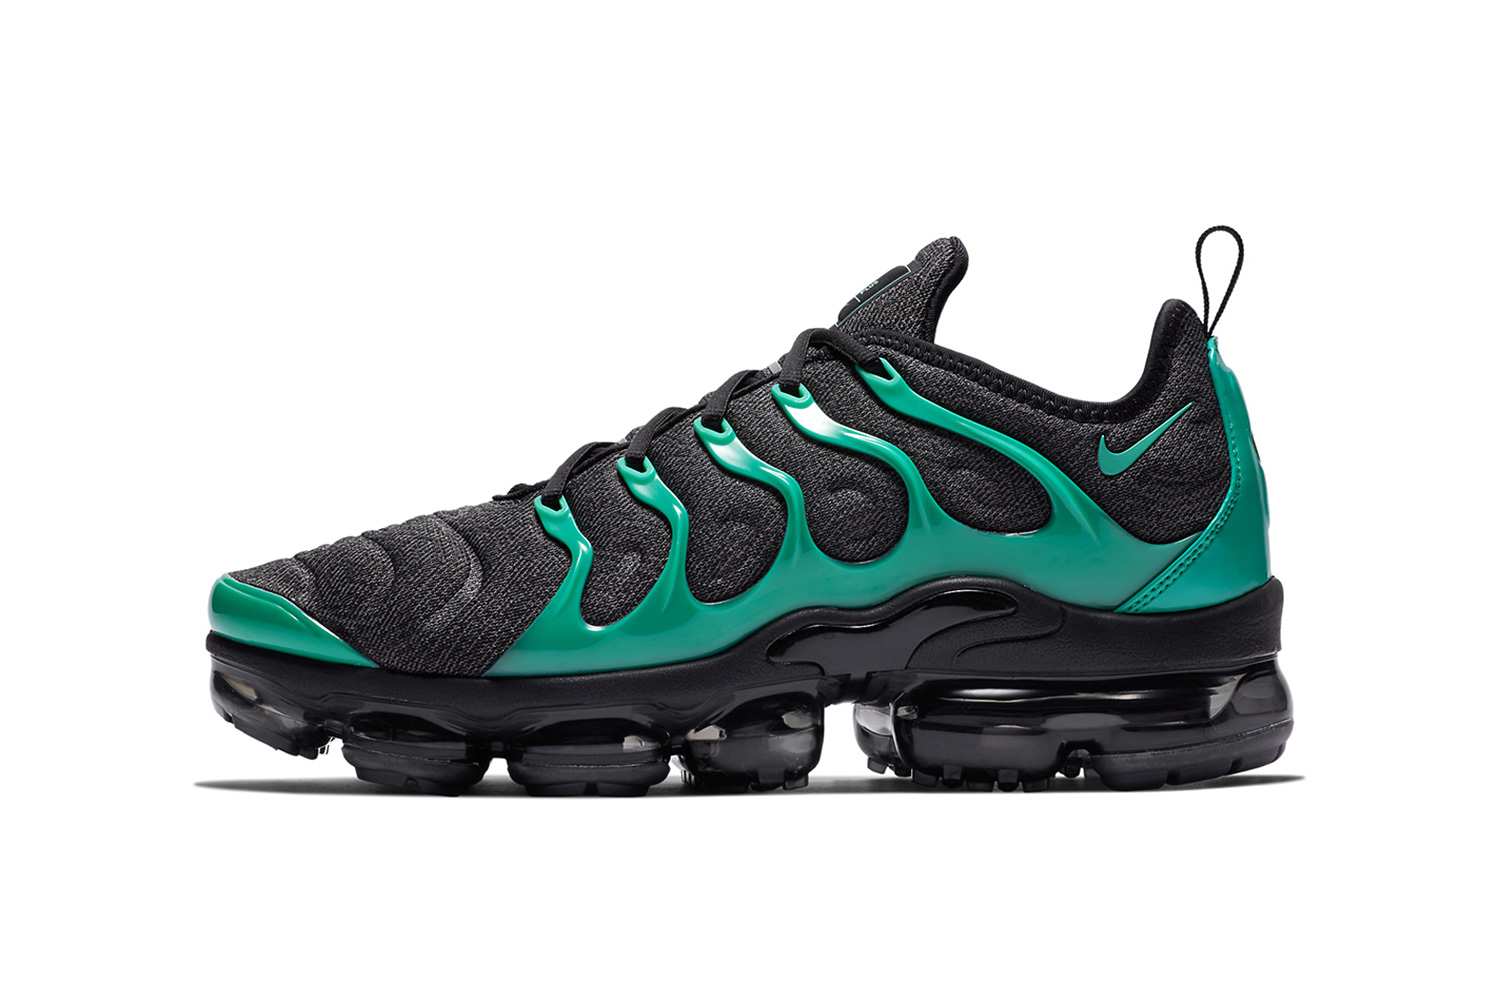 Nike Air VaporMax Plus Black/Green